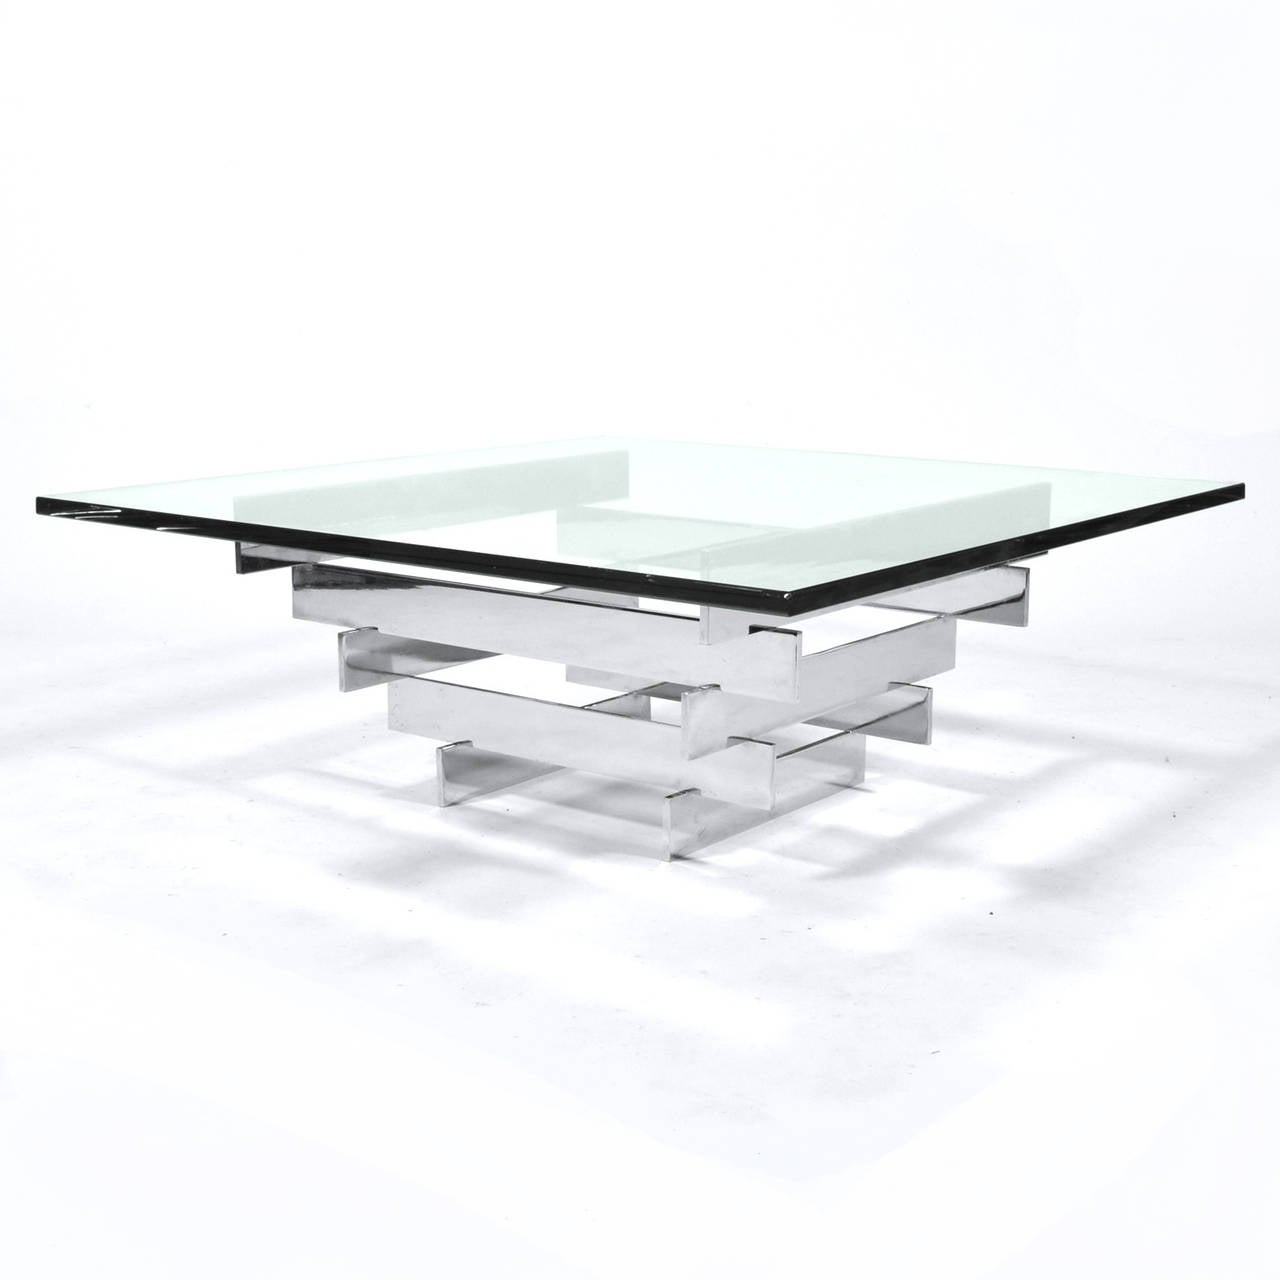 A base of polished chromed steel with a wonderful architectural design supports a substantial glass top this Paul Mayen coffee table perfectly illustrates his refined Minimalist aesthetic.